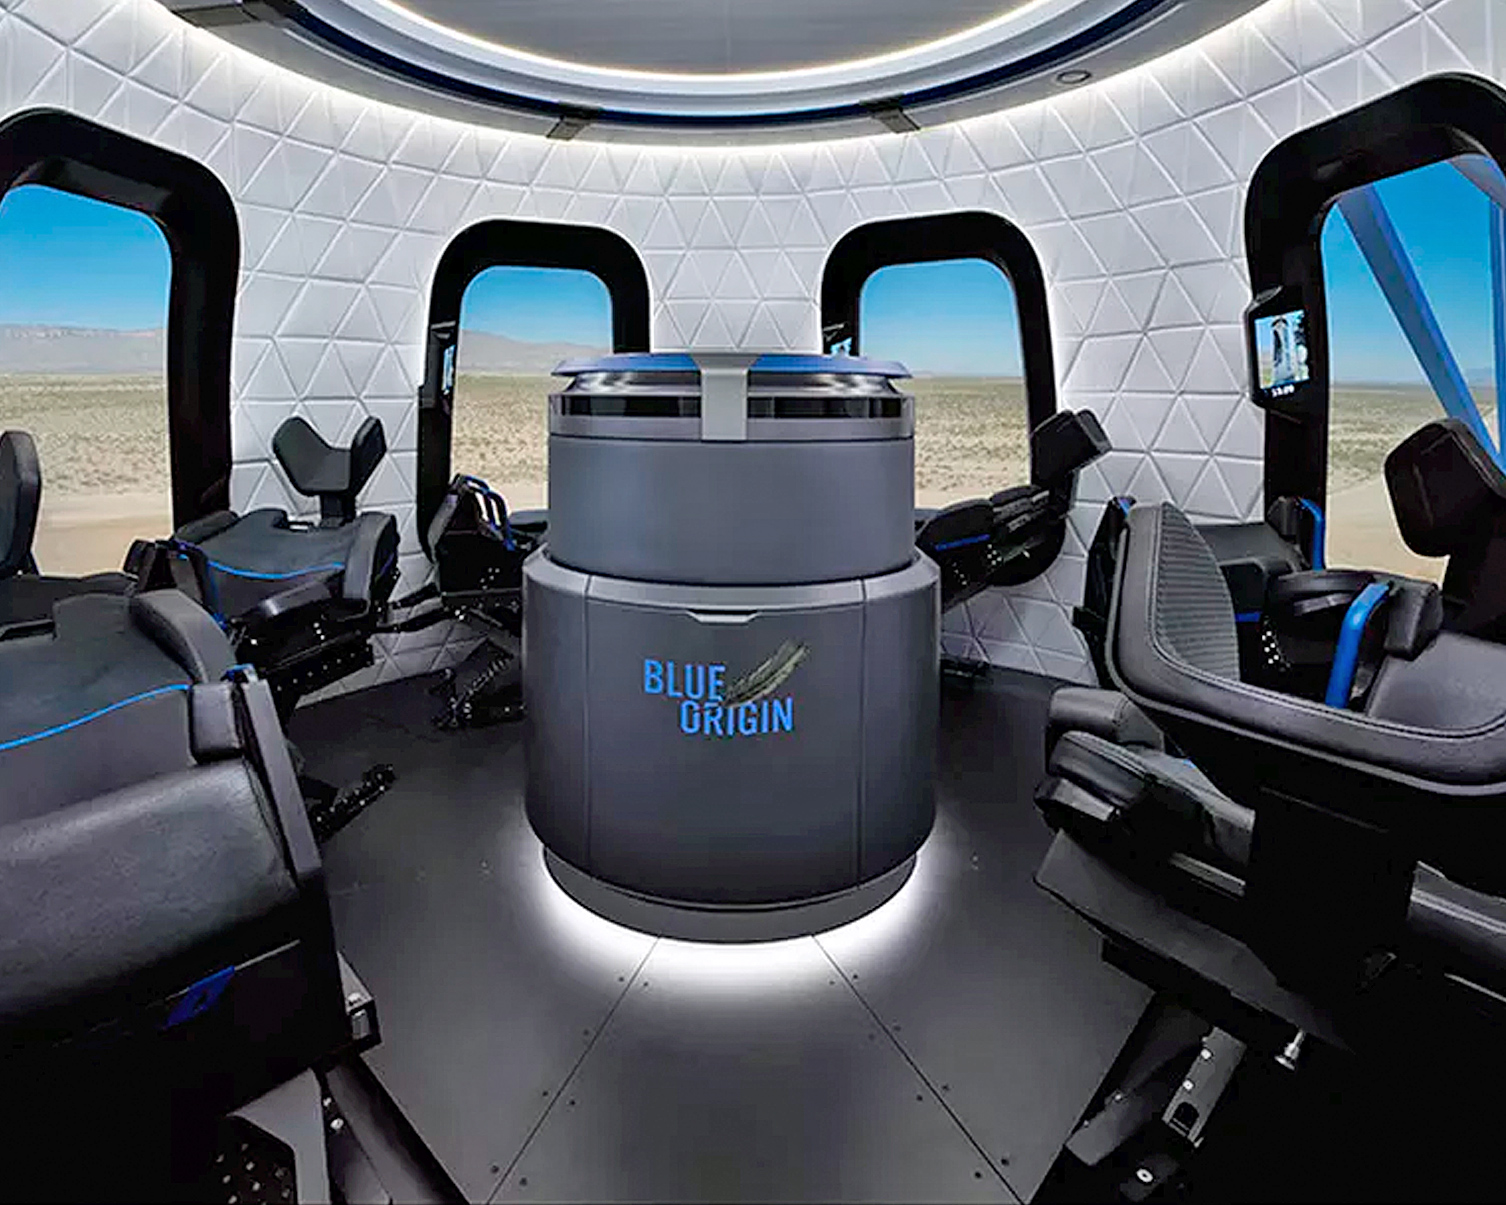 Jeff Bezos Bans Space Pooping and Space Barfing on Blue Origin